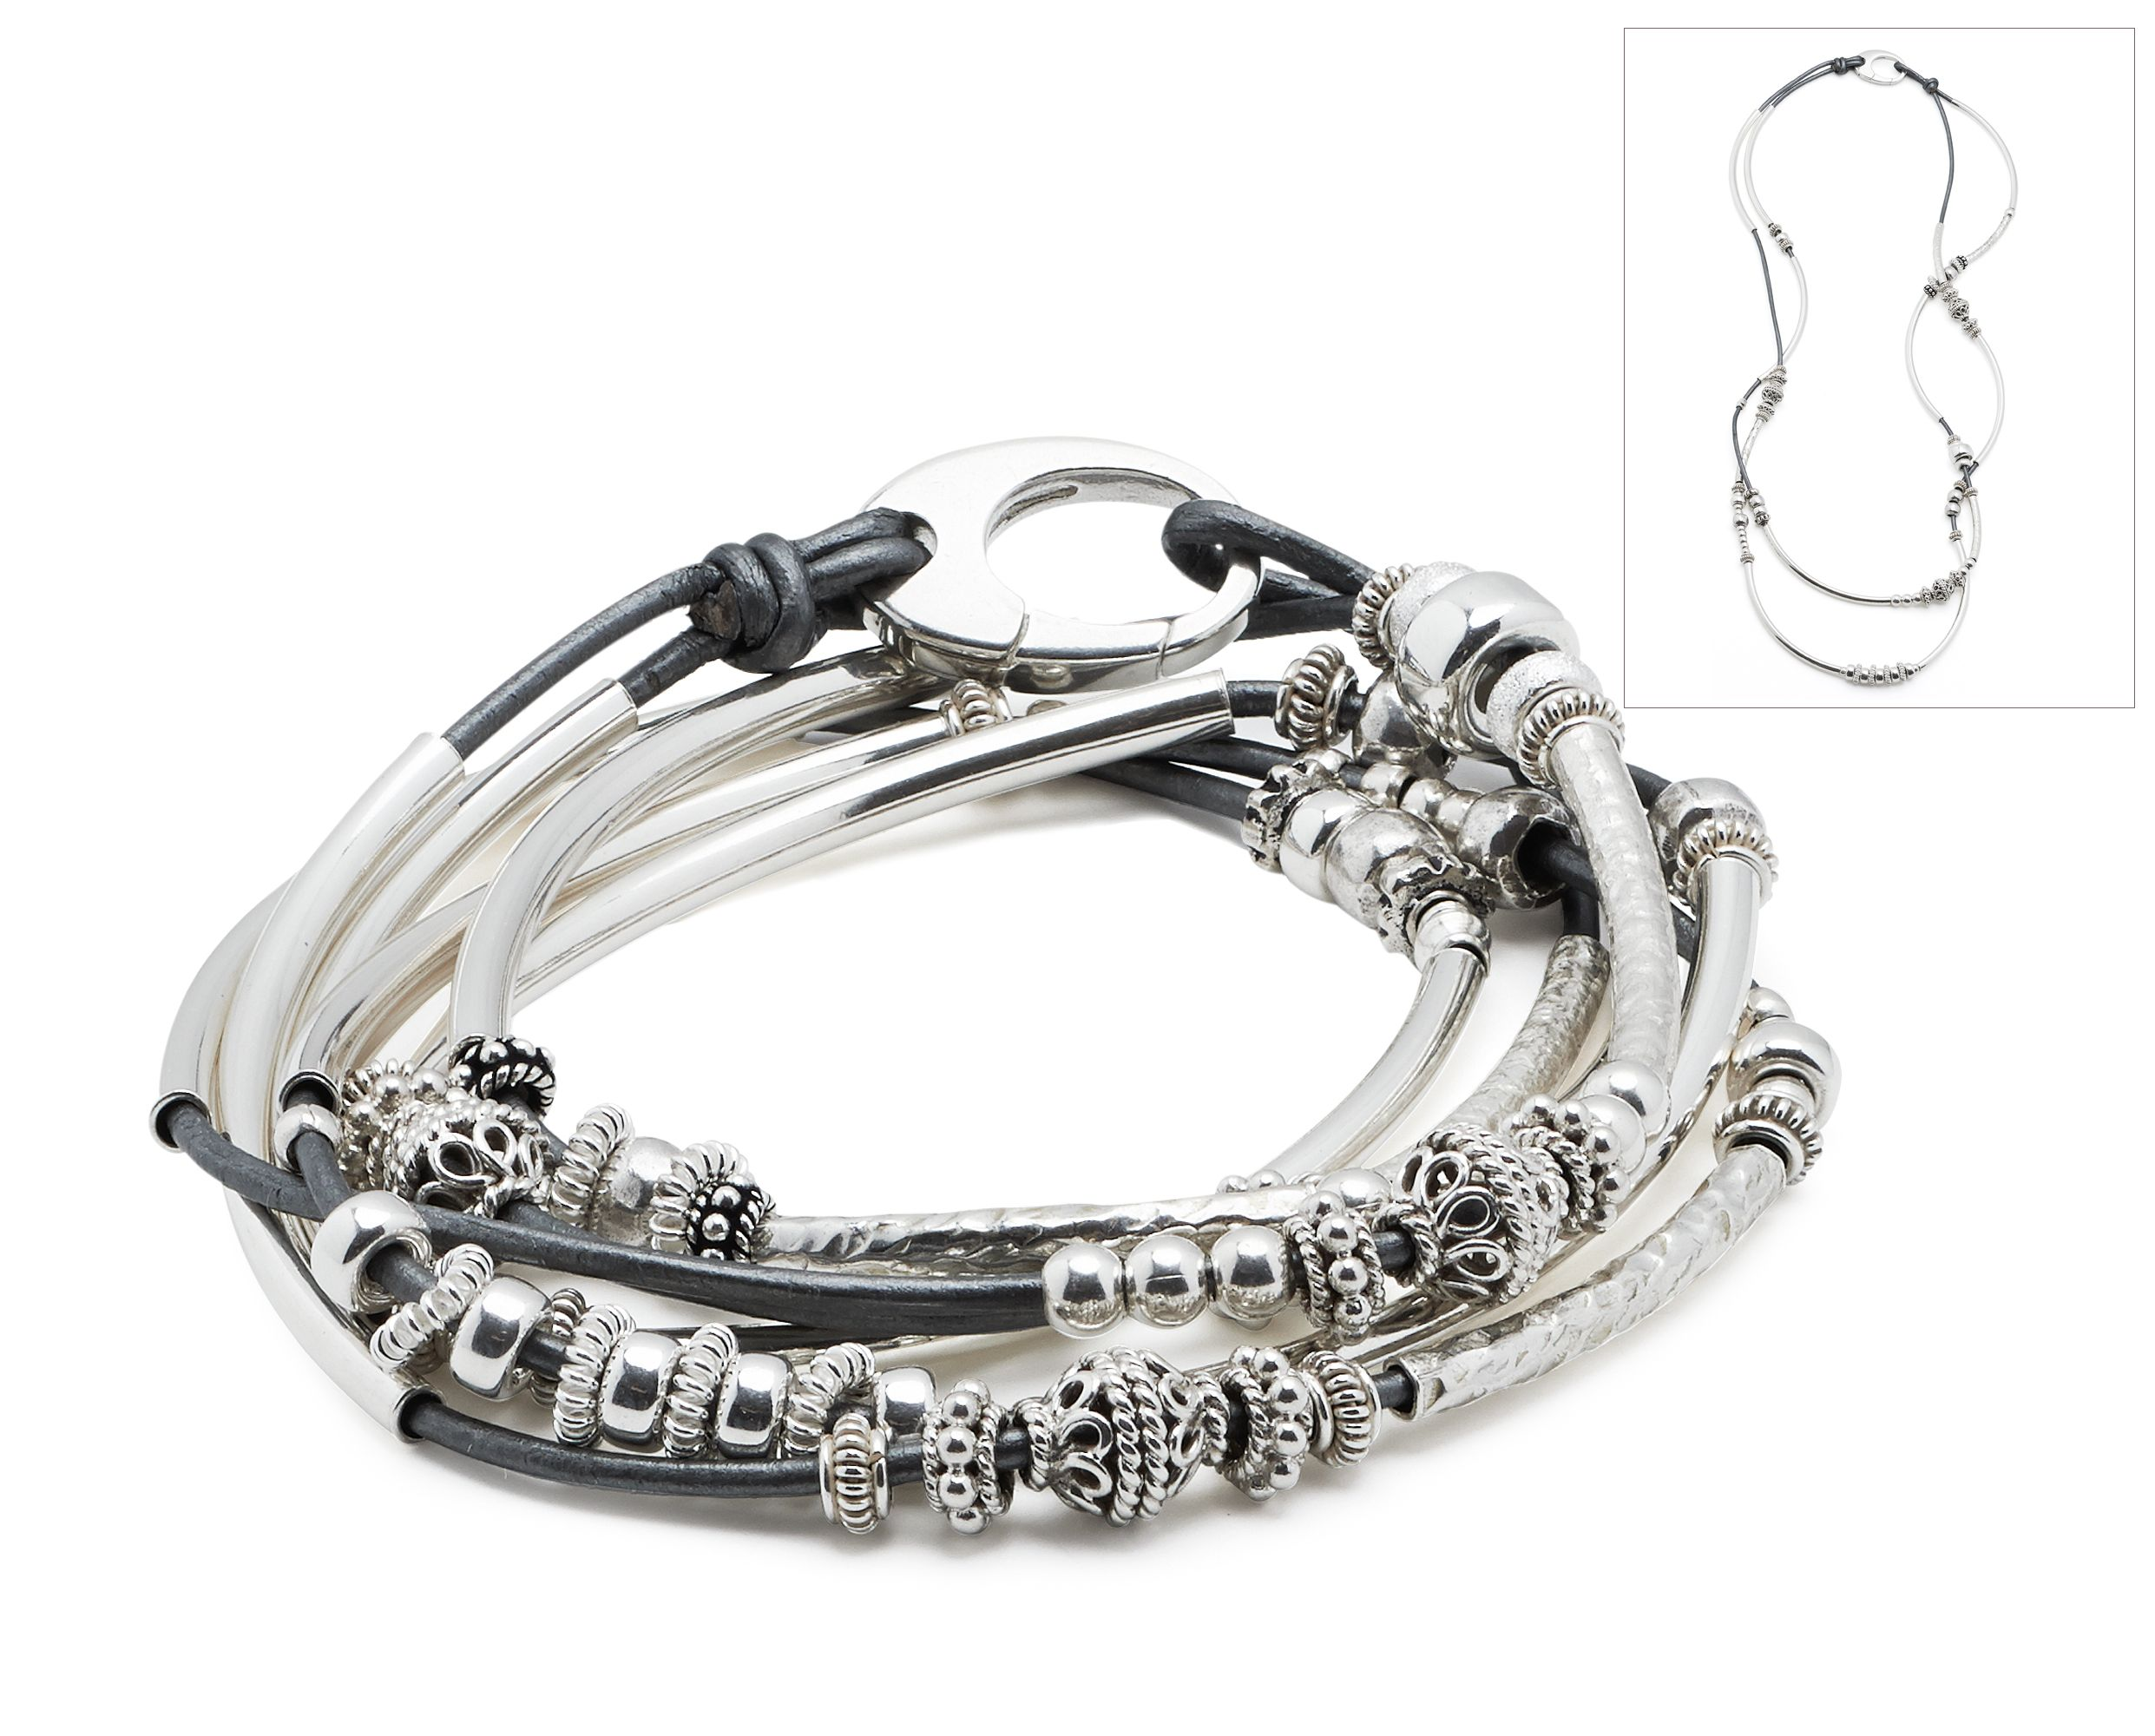 The Lizzy James Sterling Silver Sophia leather wrap bracelet in